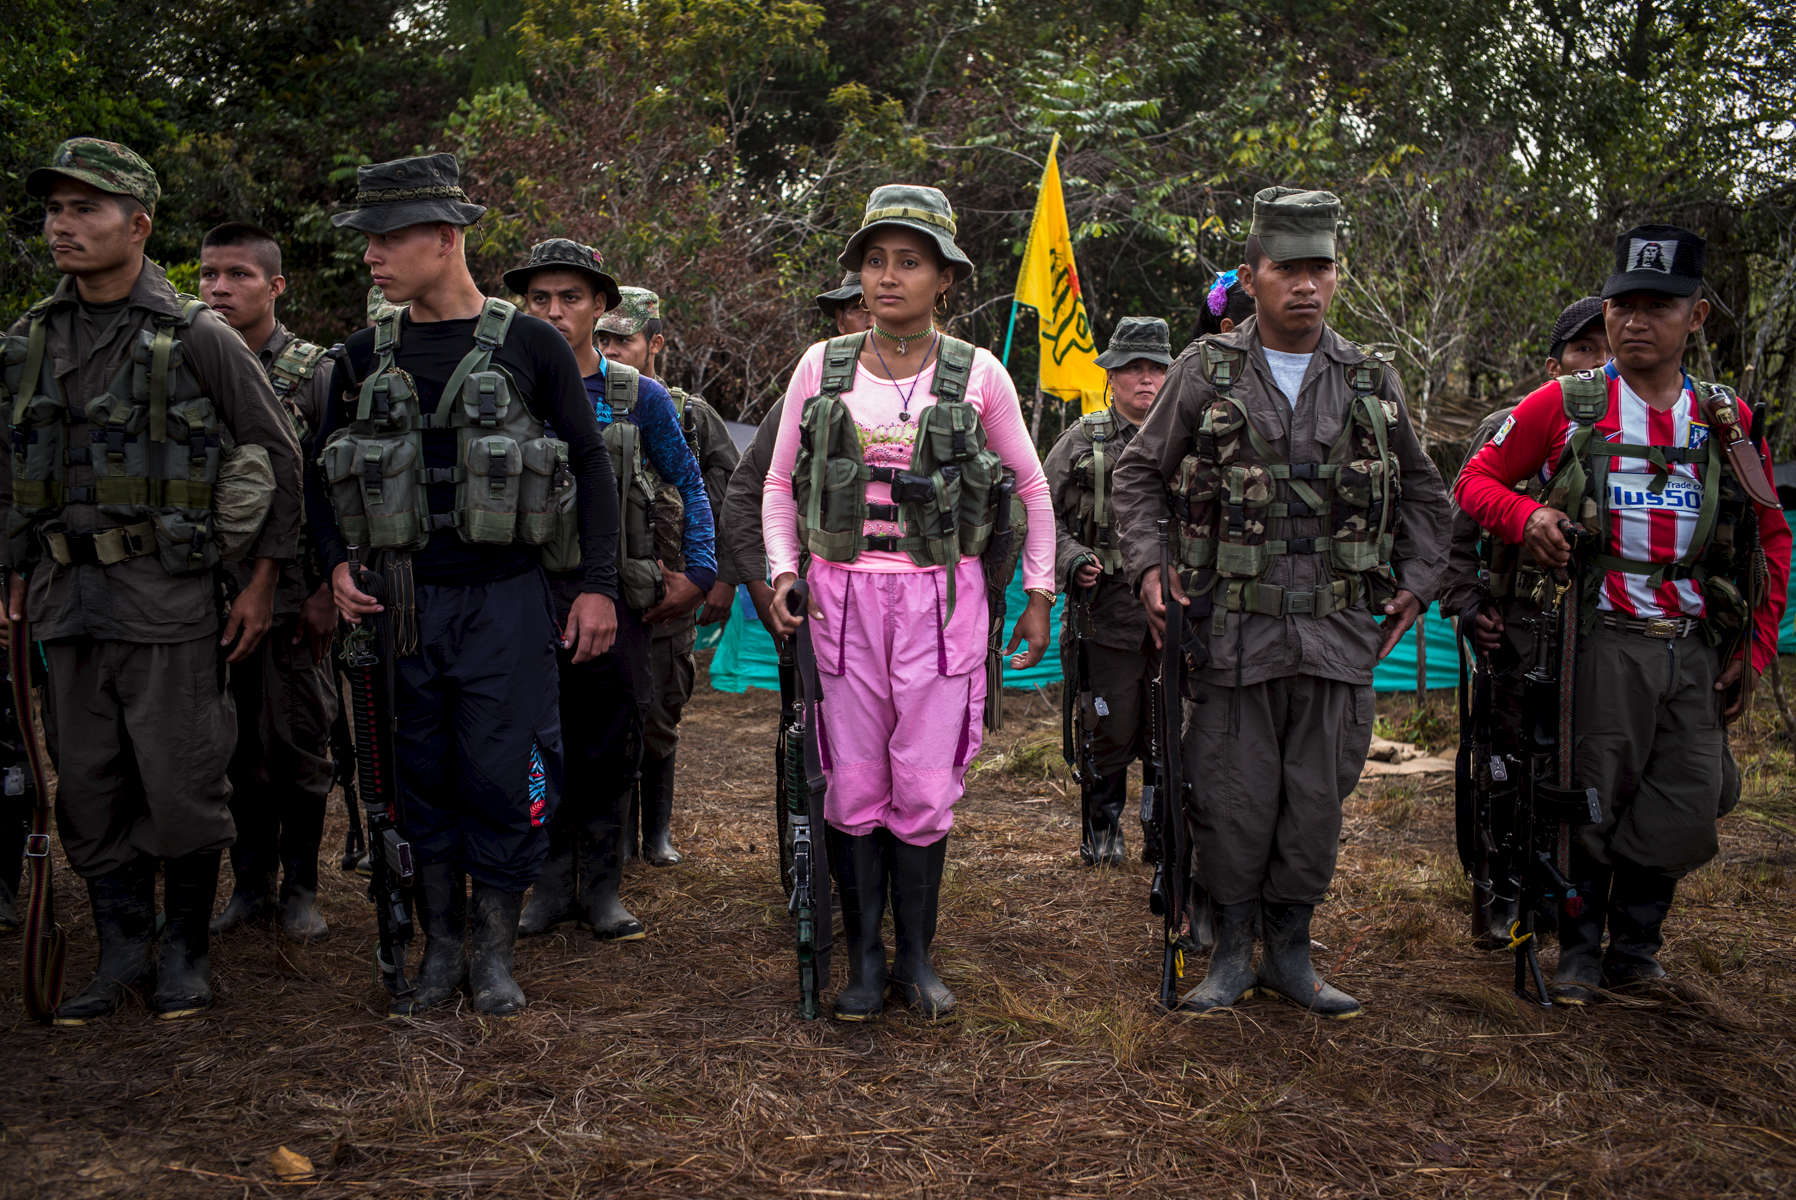 September 18, 2016. Members of the Bloque Sur of FARC take formatting early in the morning to receive the orders and tasks of the day. Rebels have routine schedules that they follow everyday despite they are currently awaiting demobilization. Caqueta, Colombia.